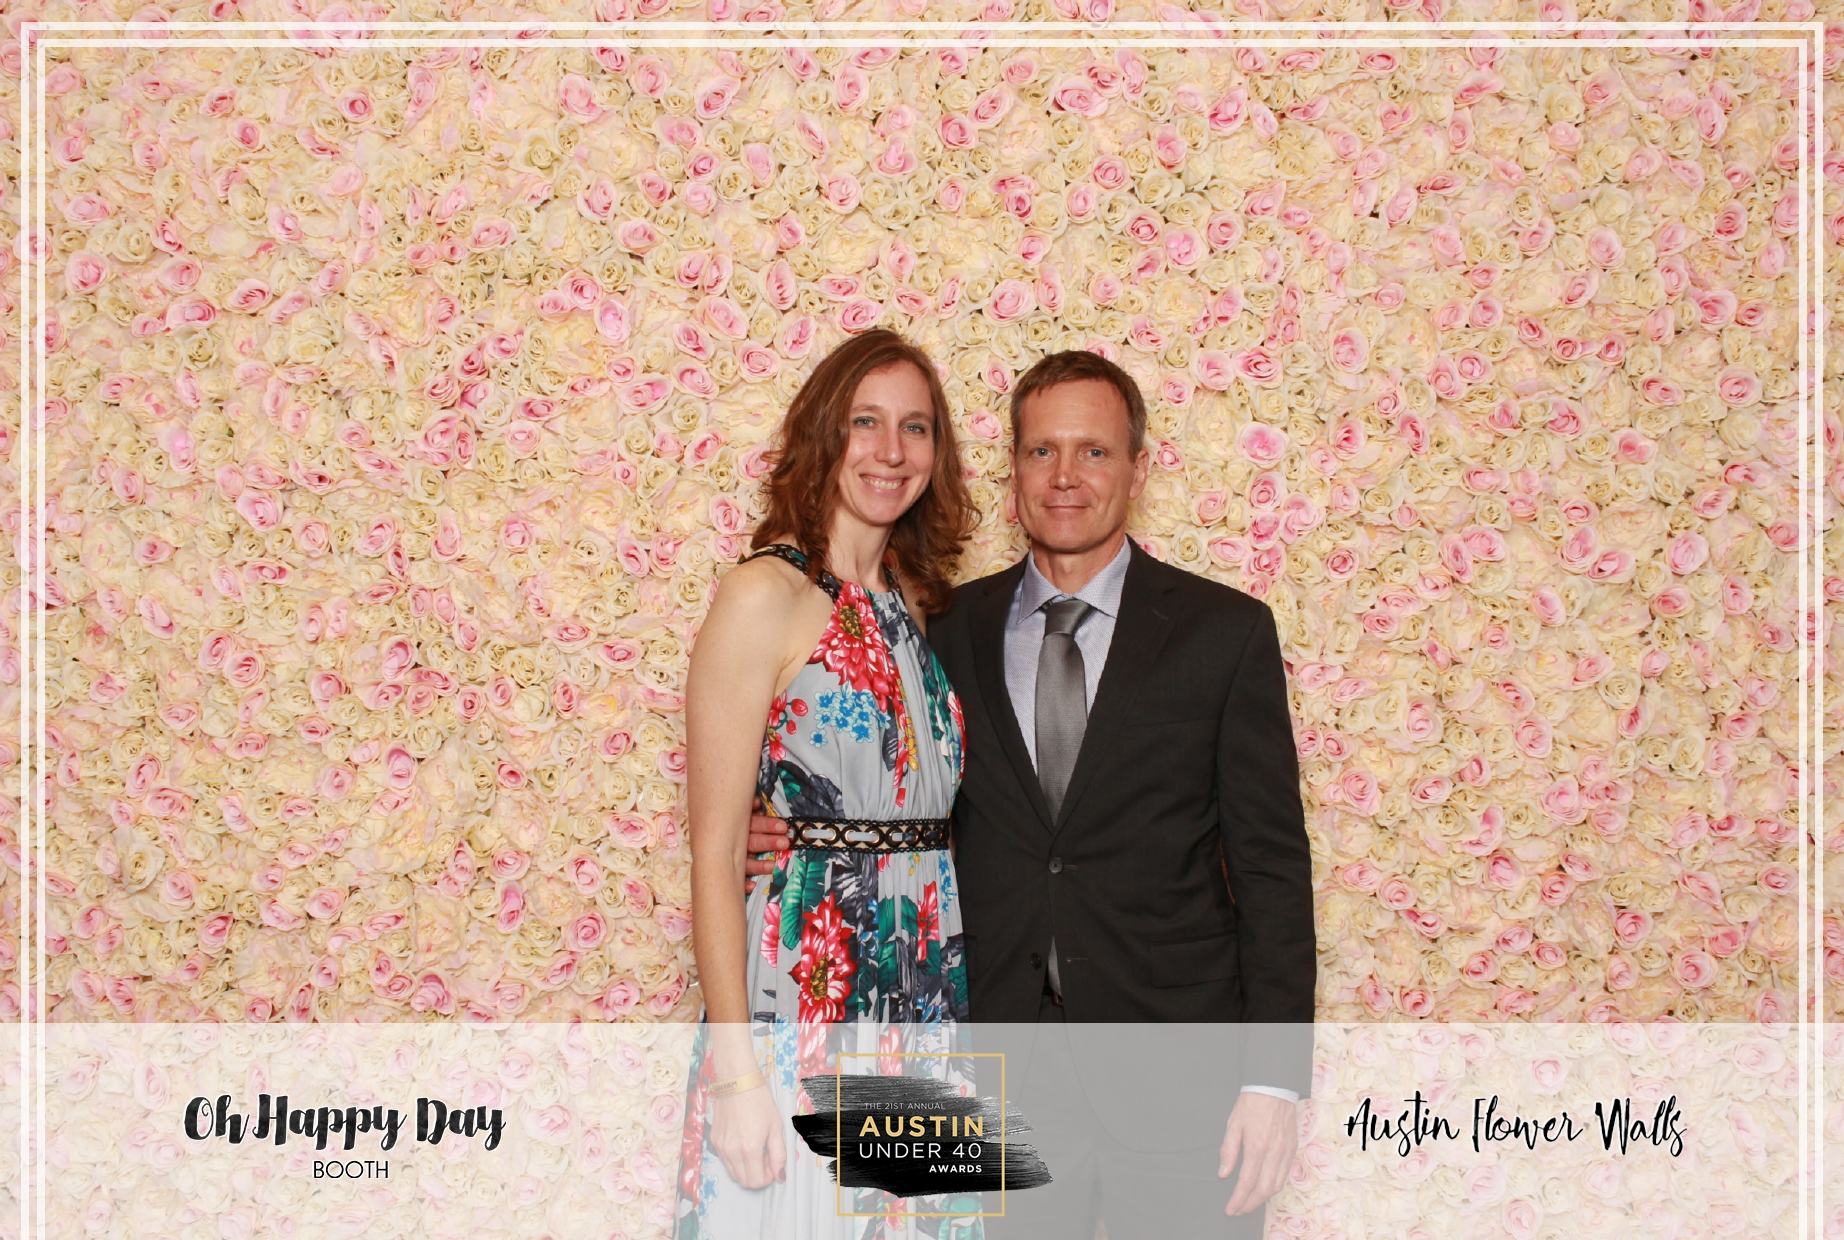 Oh Happy Day Booth - Austin Under 40-125.jpg